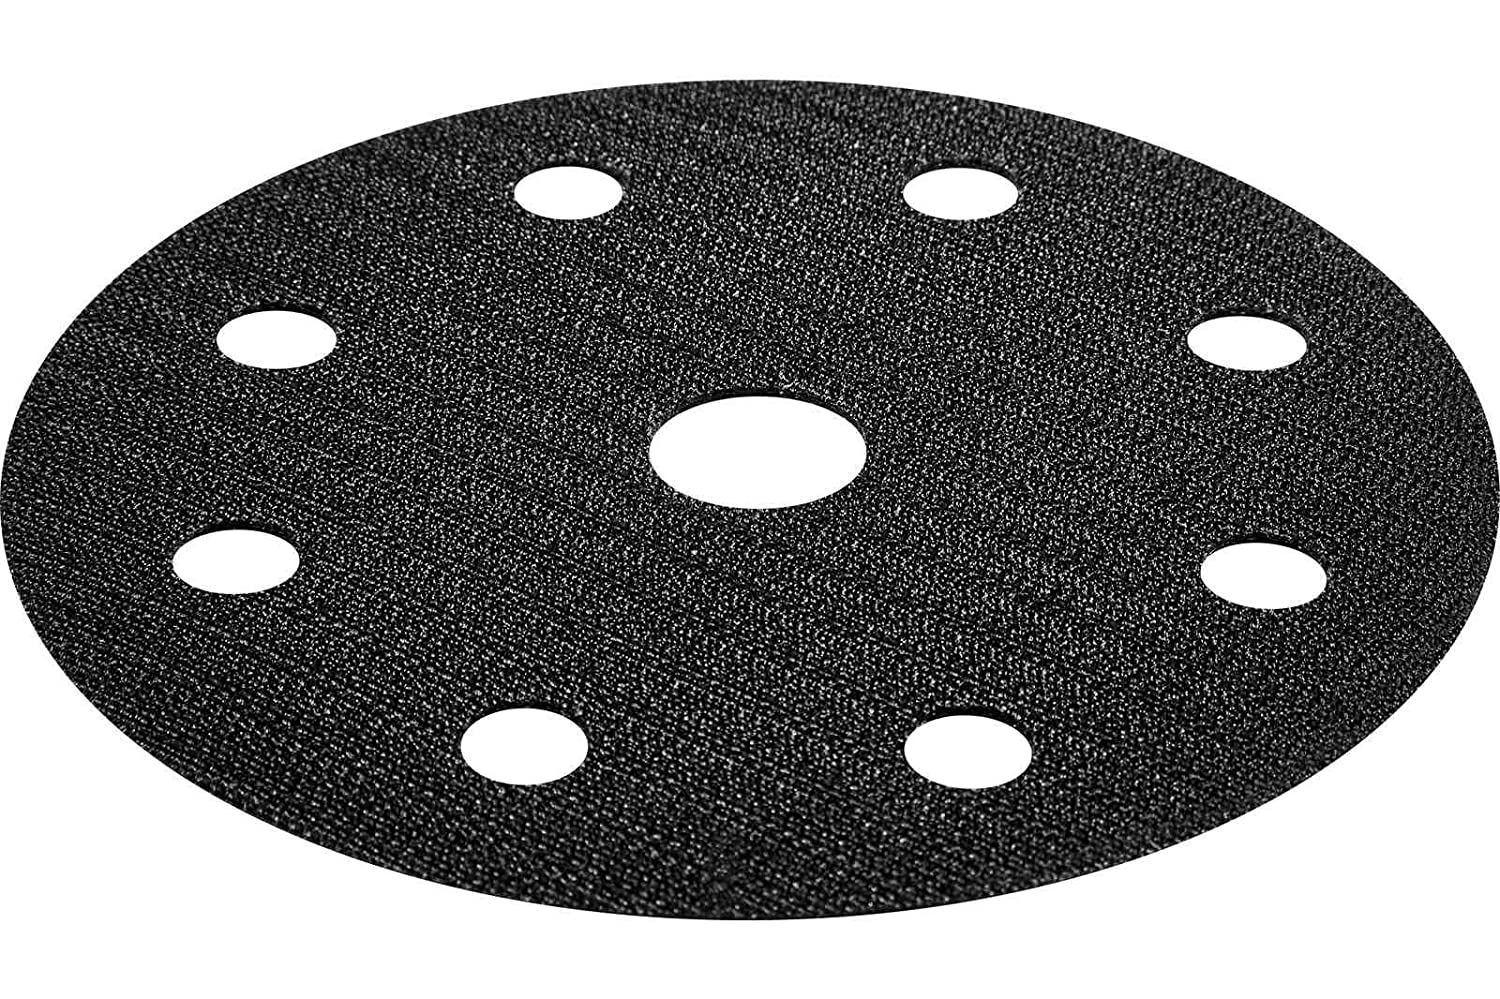 Festool 203344 GRANAT Net Protection Pad, 5' 5